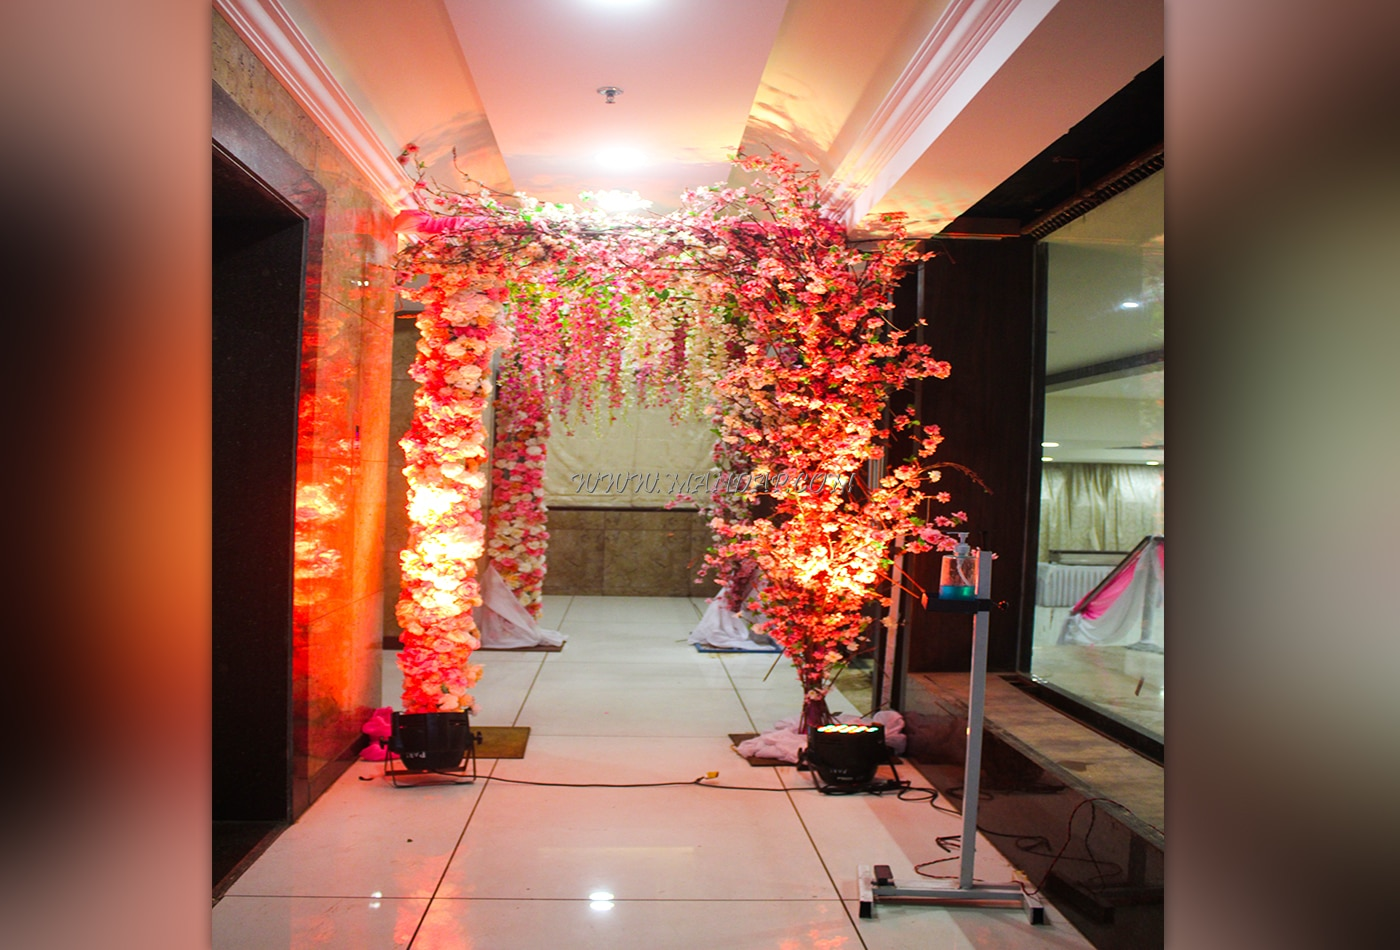 Find More Banquet Halls in Mira Road